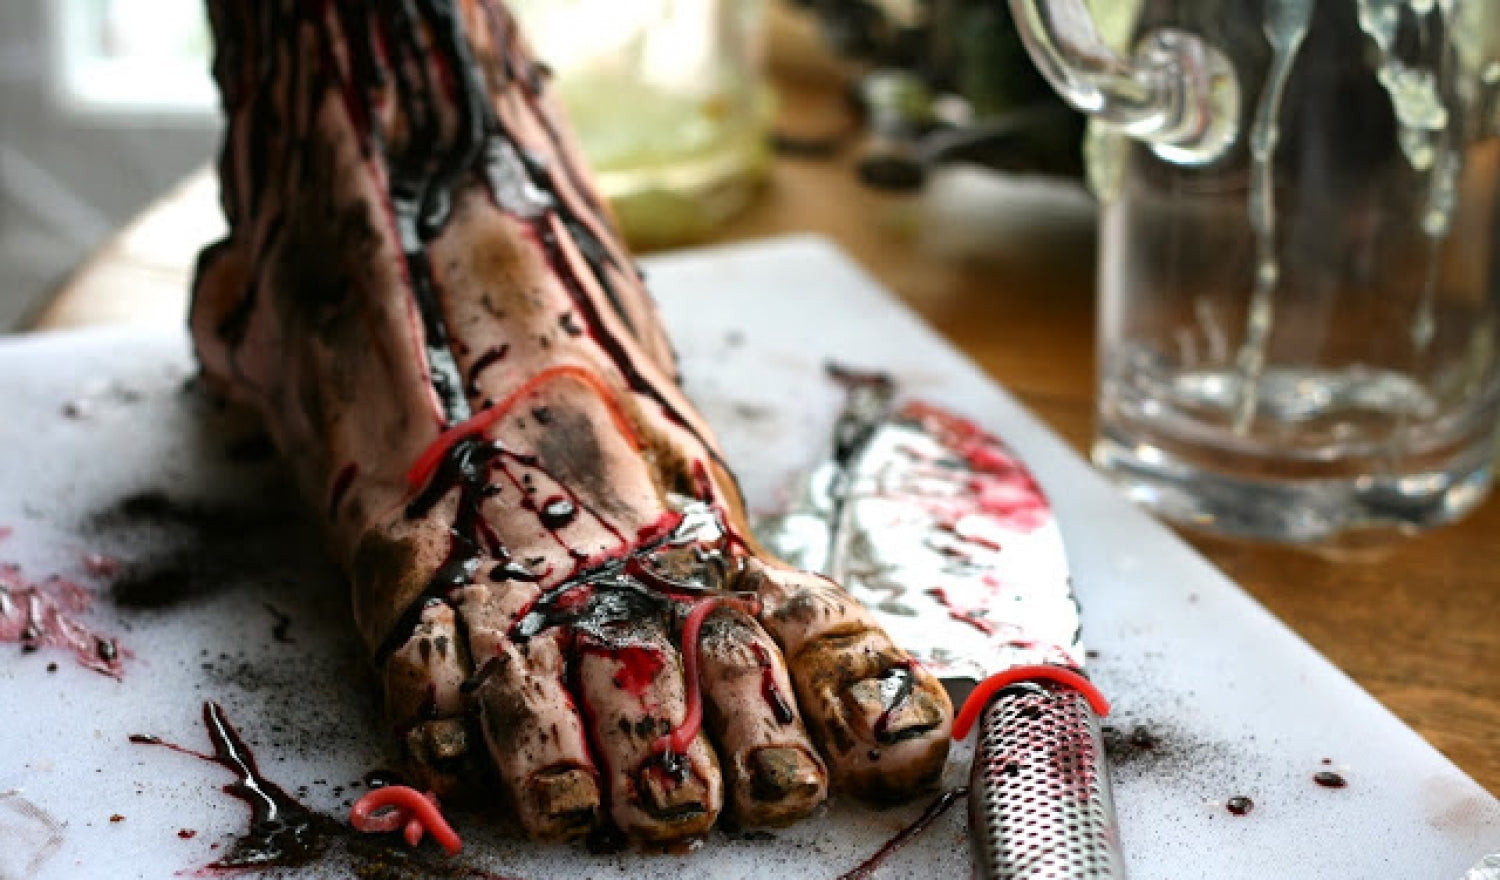 5 Gory Halloween Cakes To Delight And Disgust